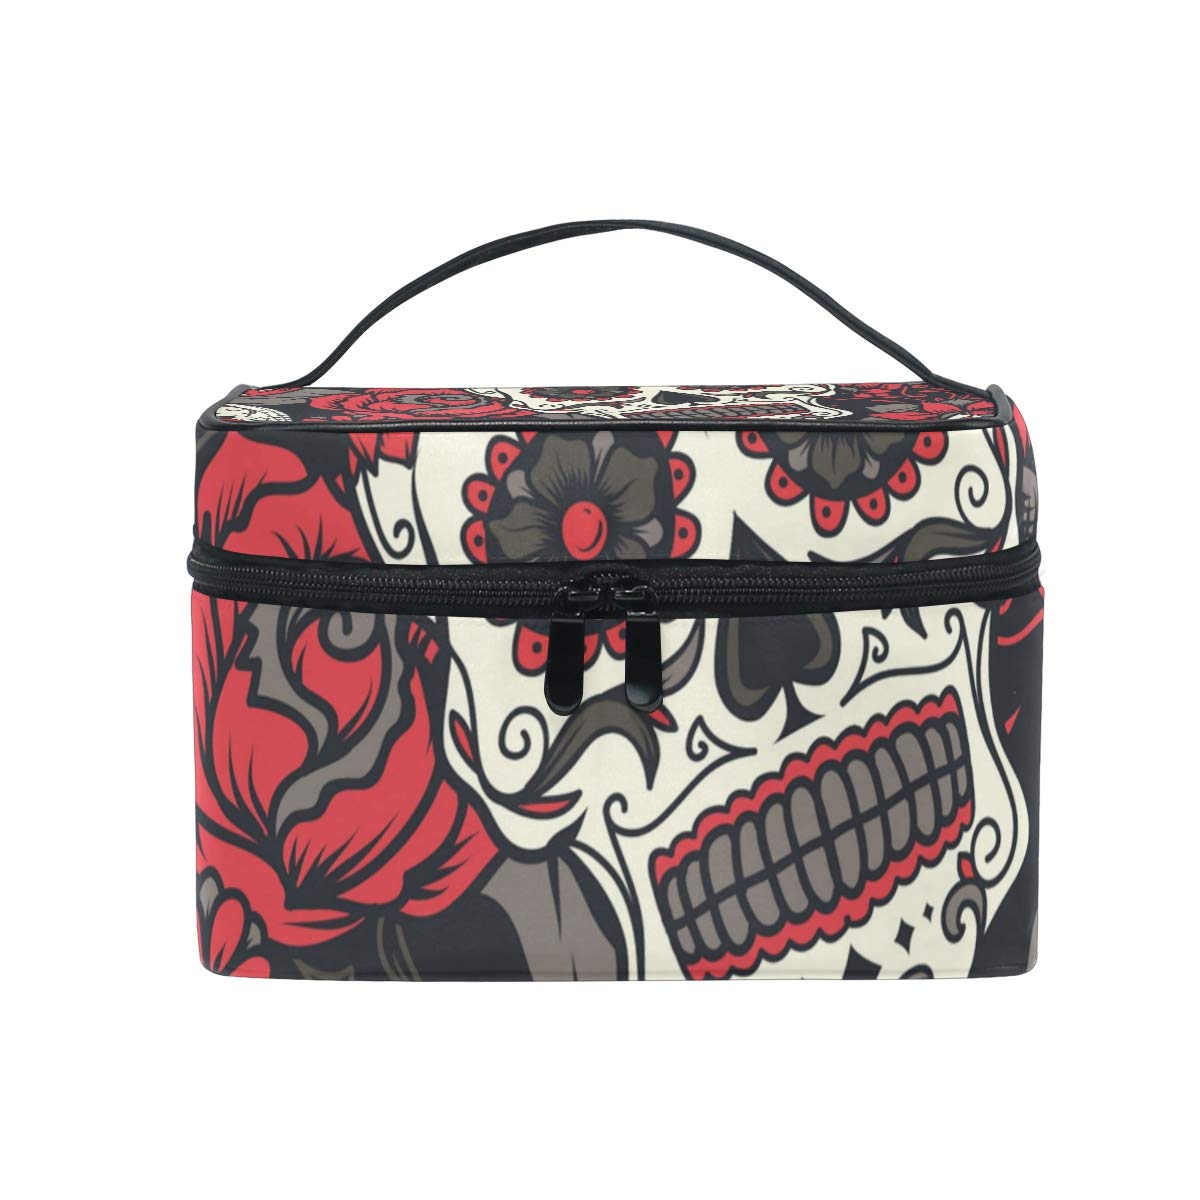 JUMBEAR Travel Cosmetic Bag Halloween Sugar Skull Toiletry Makeup Bag Pouch Tote Case Organizer Storage for Women Girls